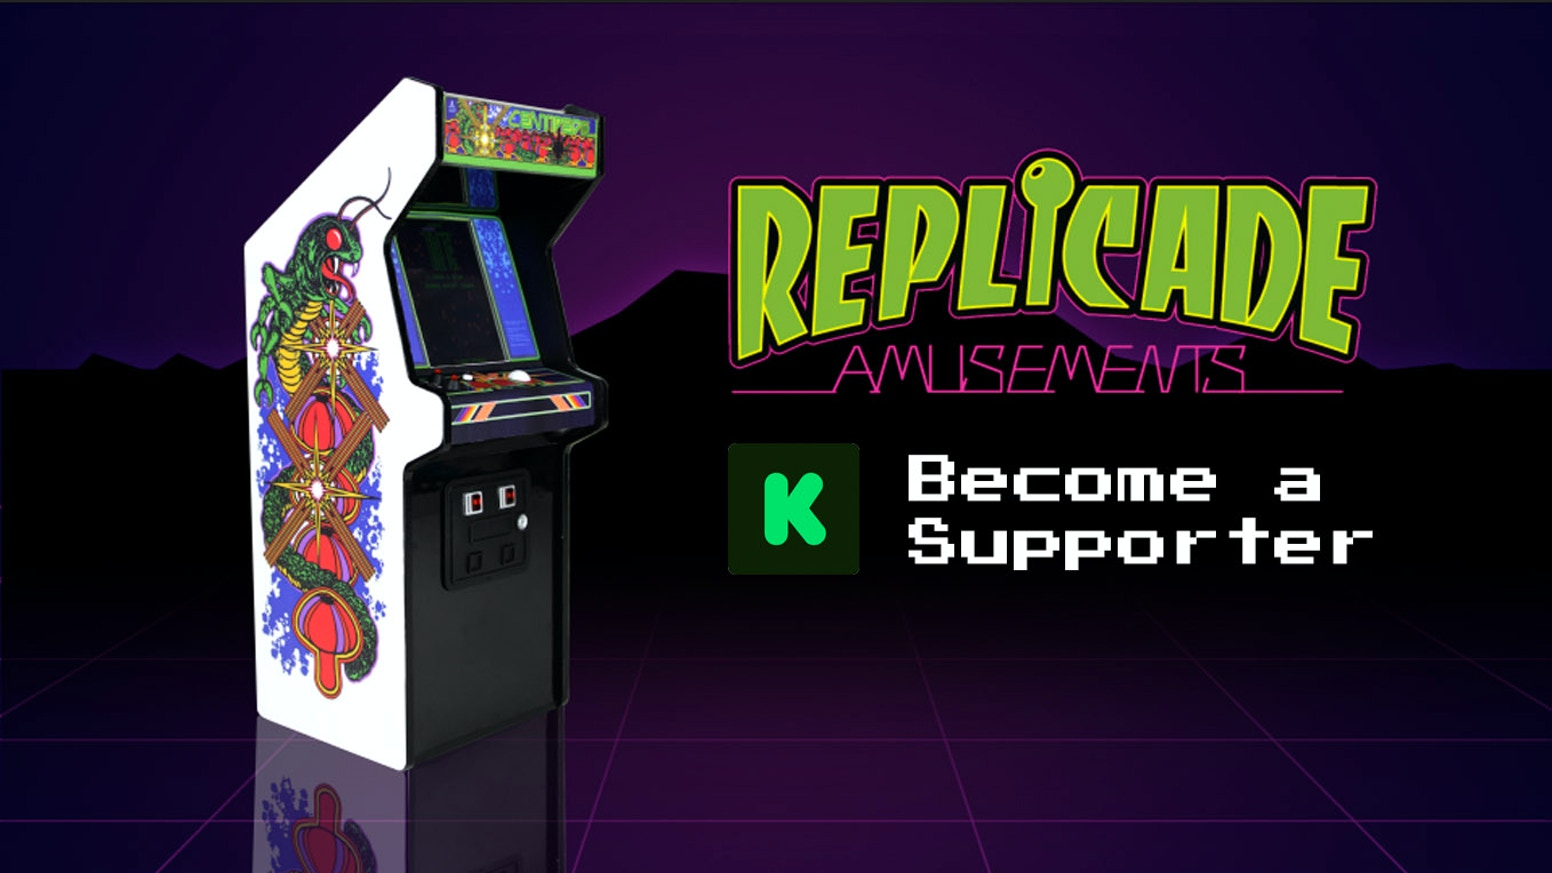 Arcade-accurate 1/6th scale replica Centipede Collector's Edition. Wood + Metal construction. Mini Trackball. Modern tech.